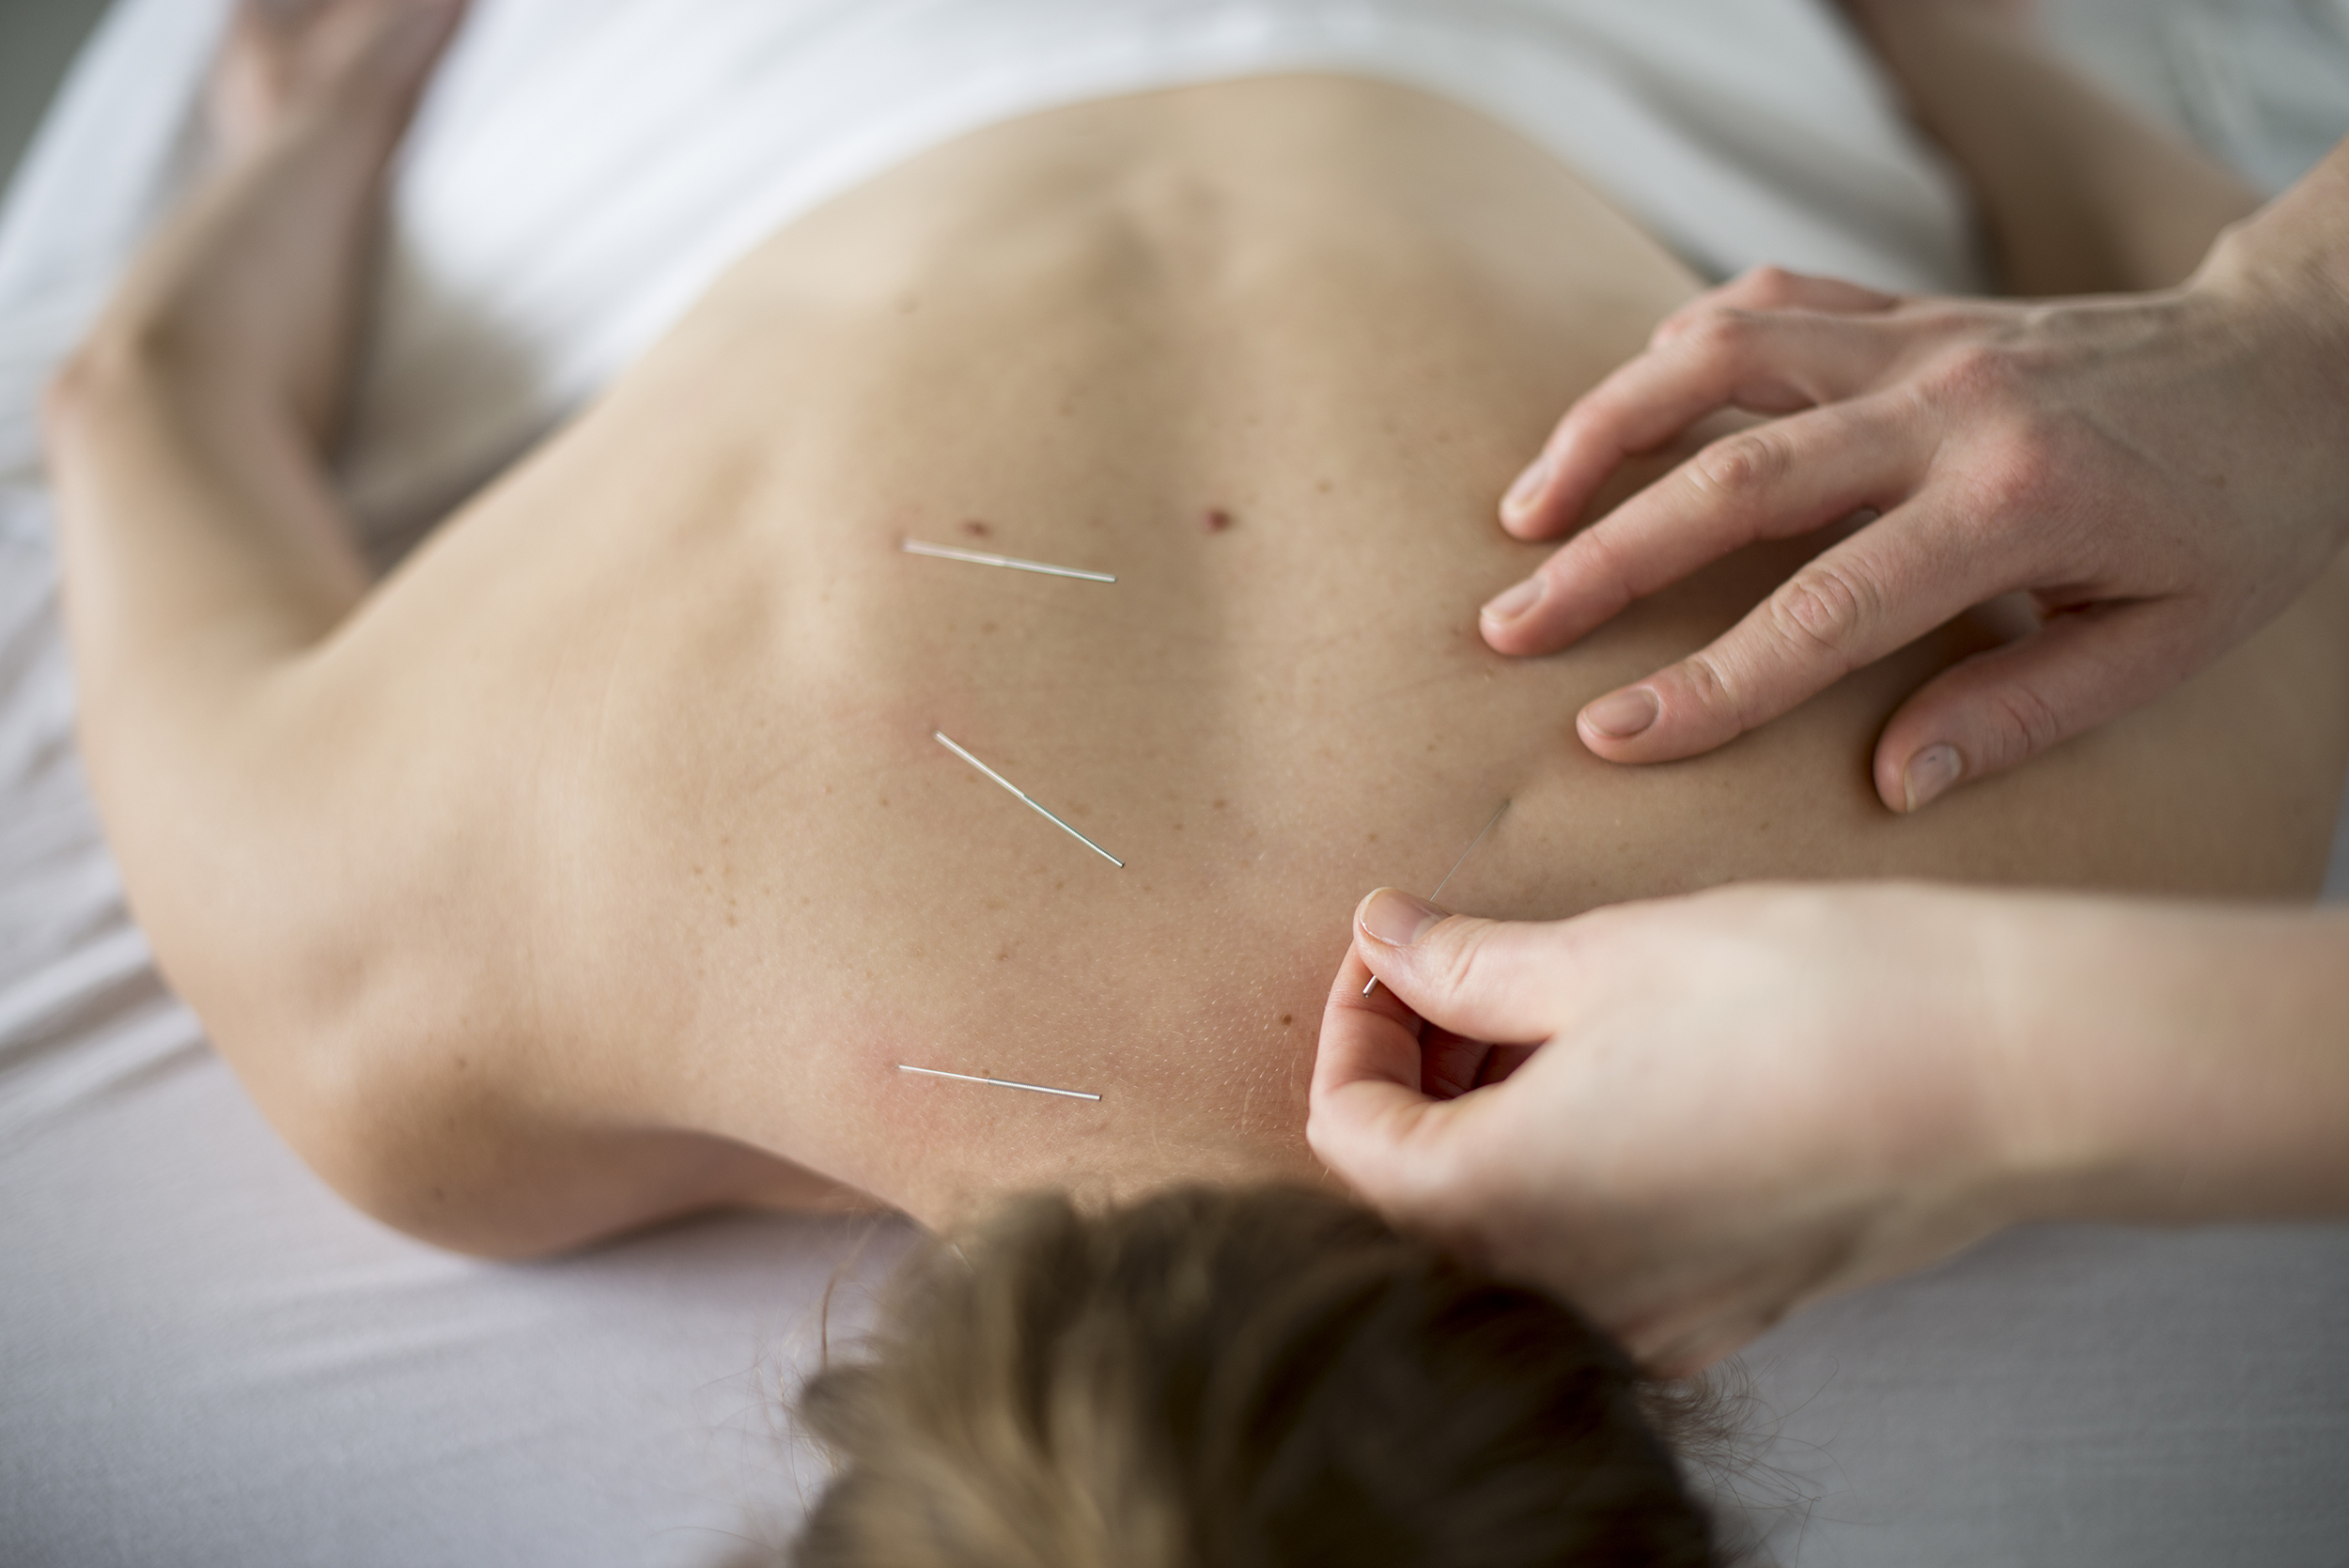 Acupuncture Needle - True Health and Fitness